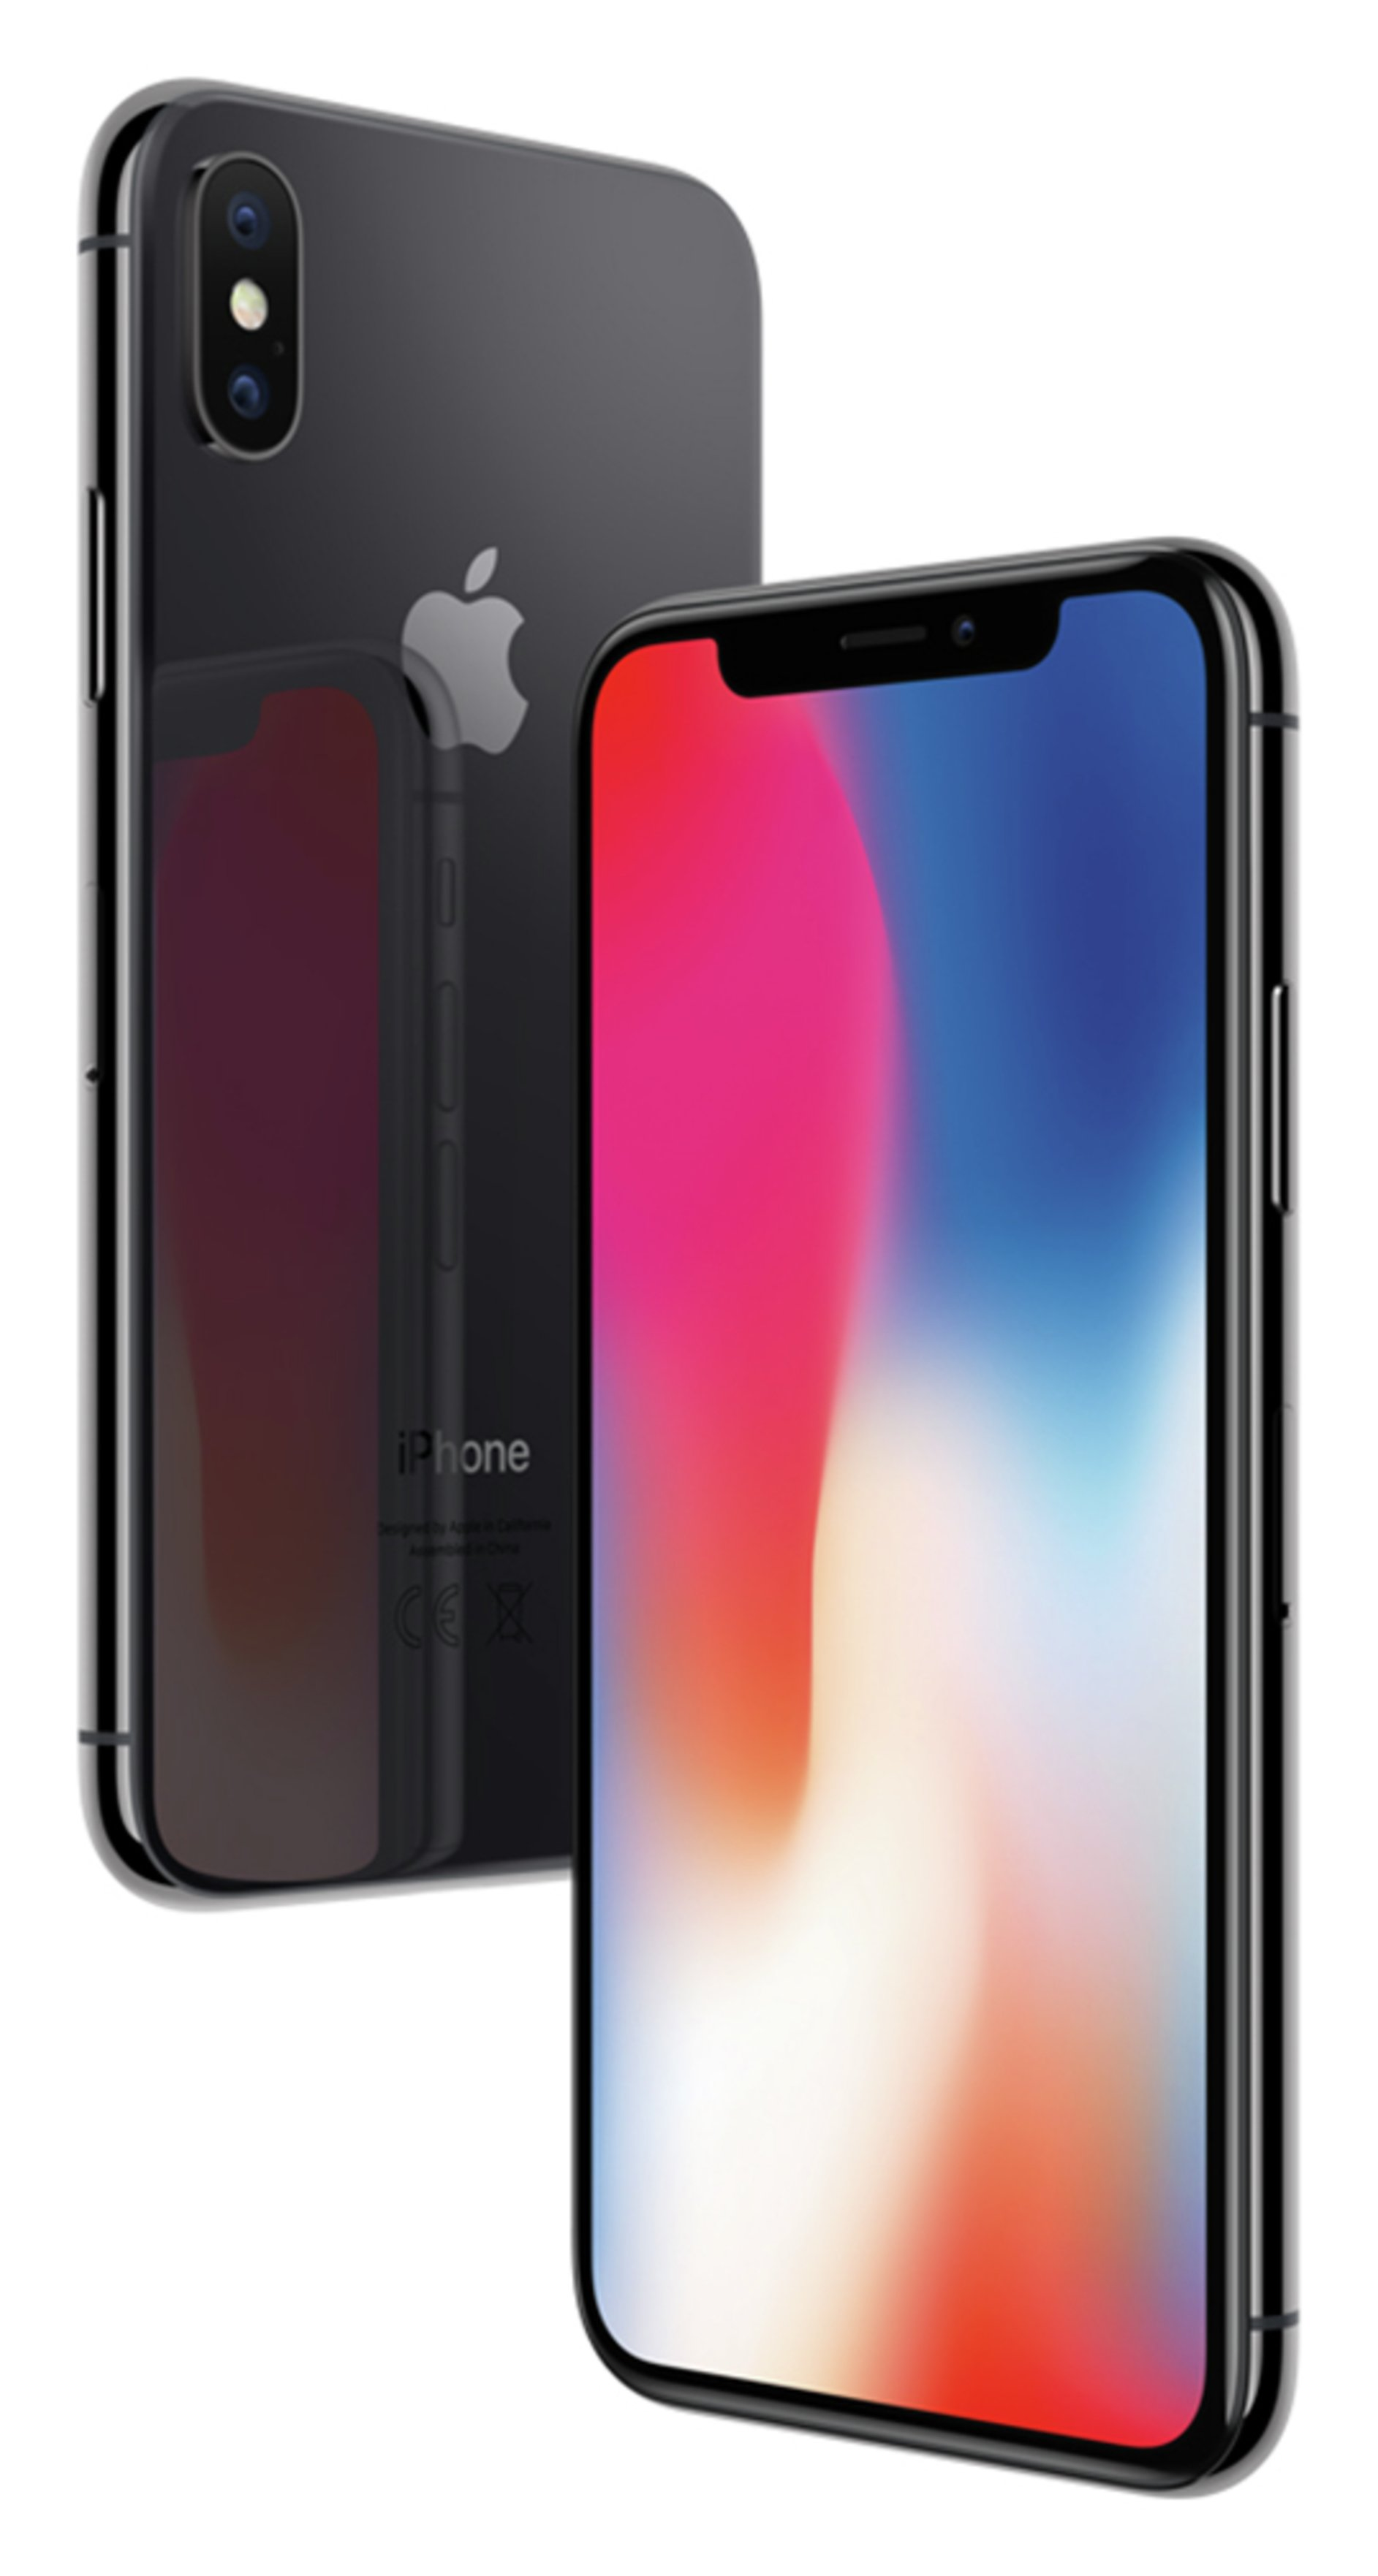 Apple Sim Free iPhone X 256GB Mobile Phone- Space Grey